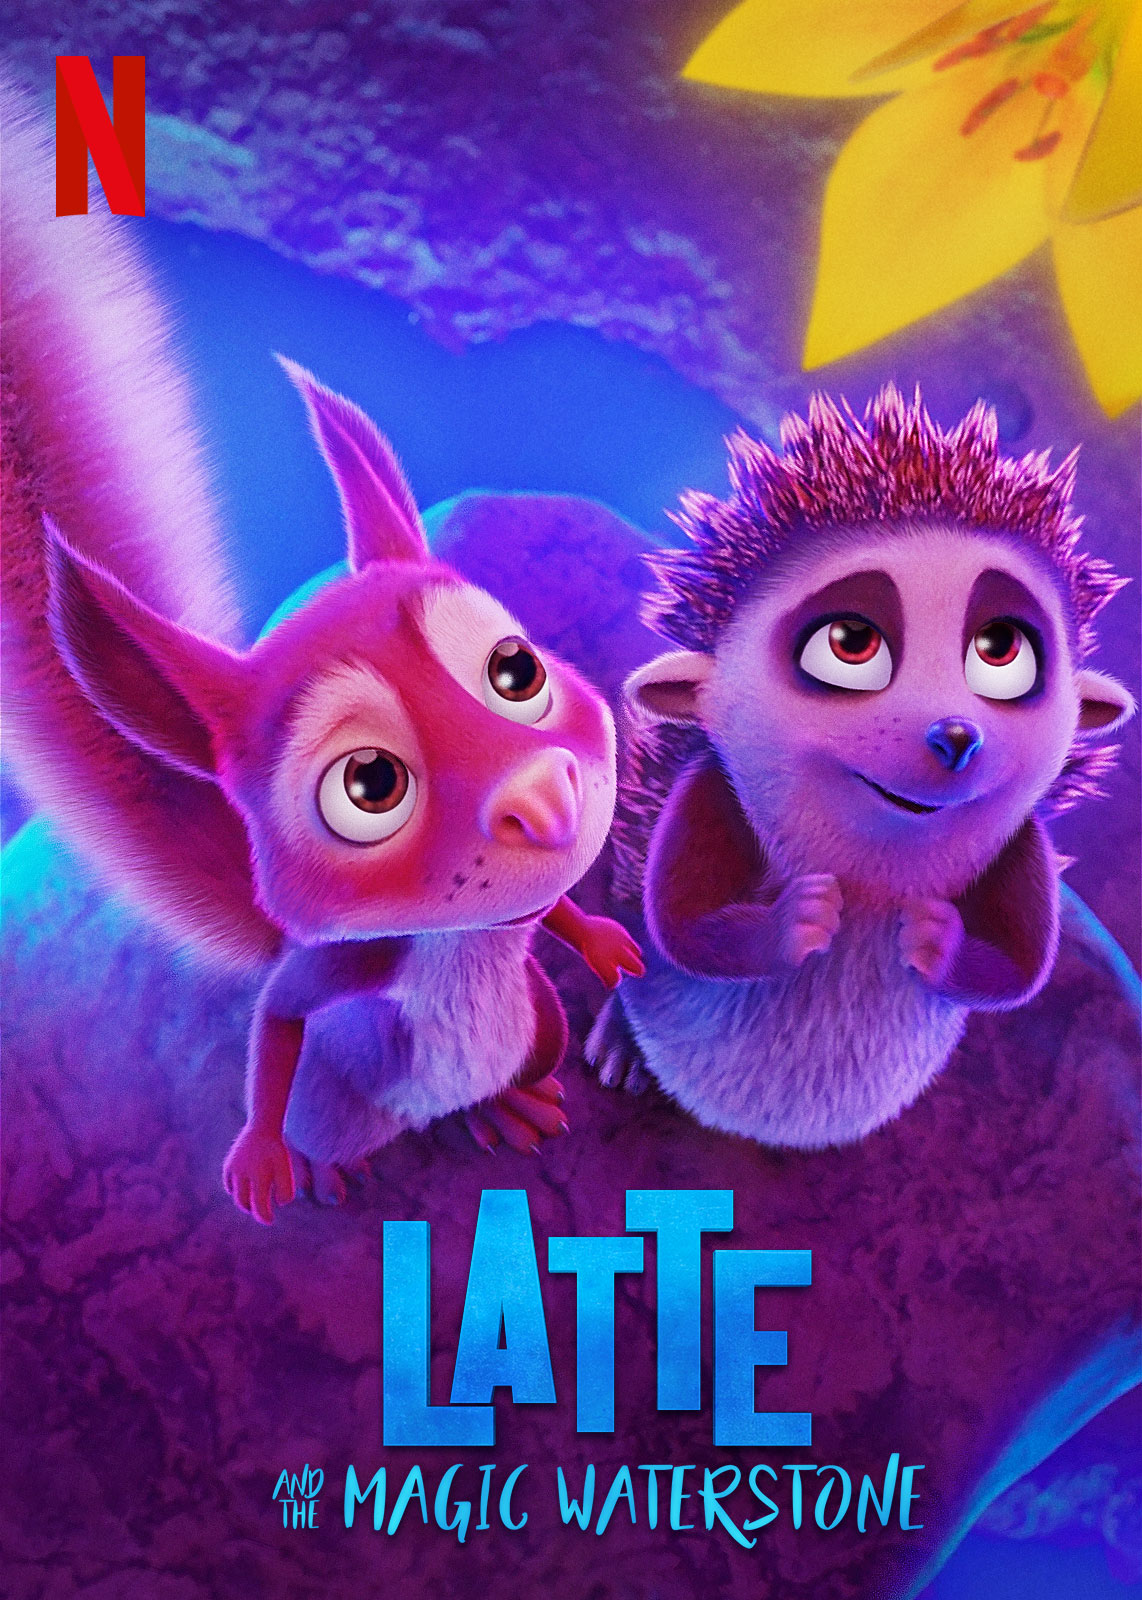 Latte and the Magic Waterstone | Netflix VDA Concept, Finishing & Illustration